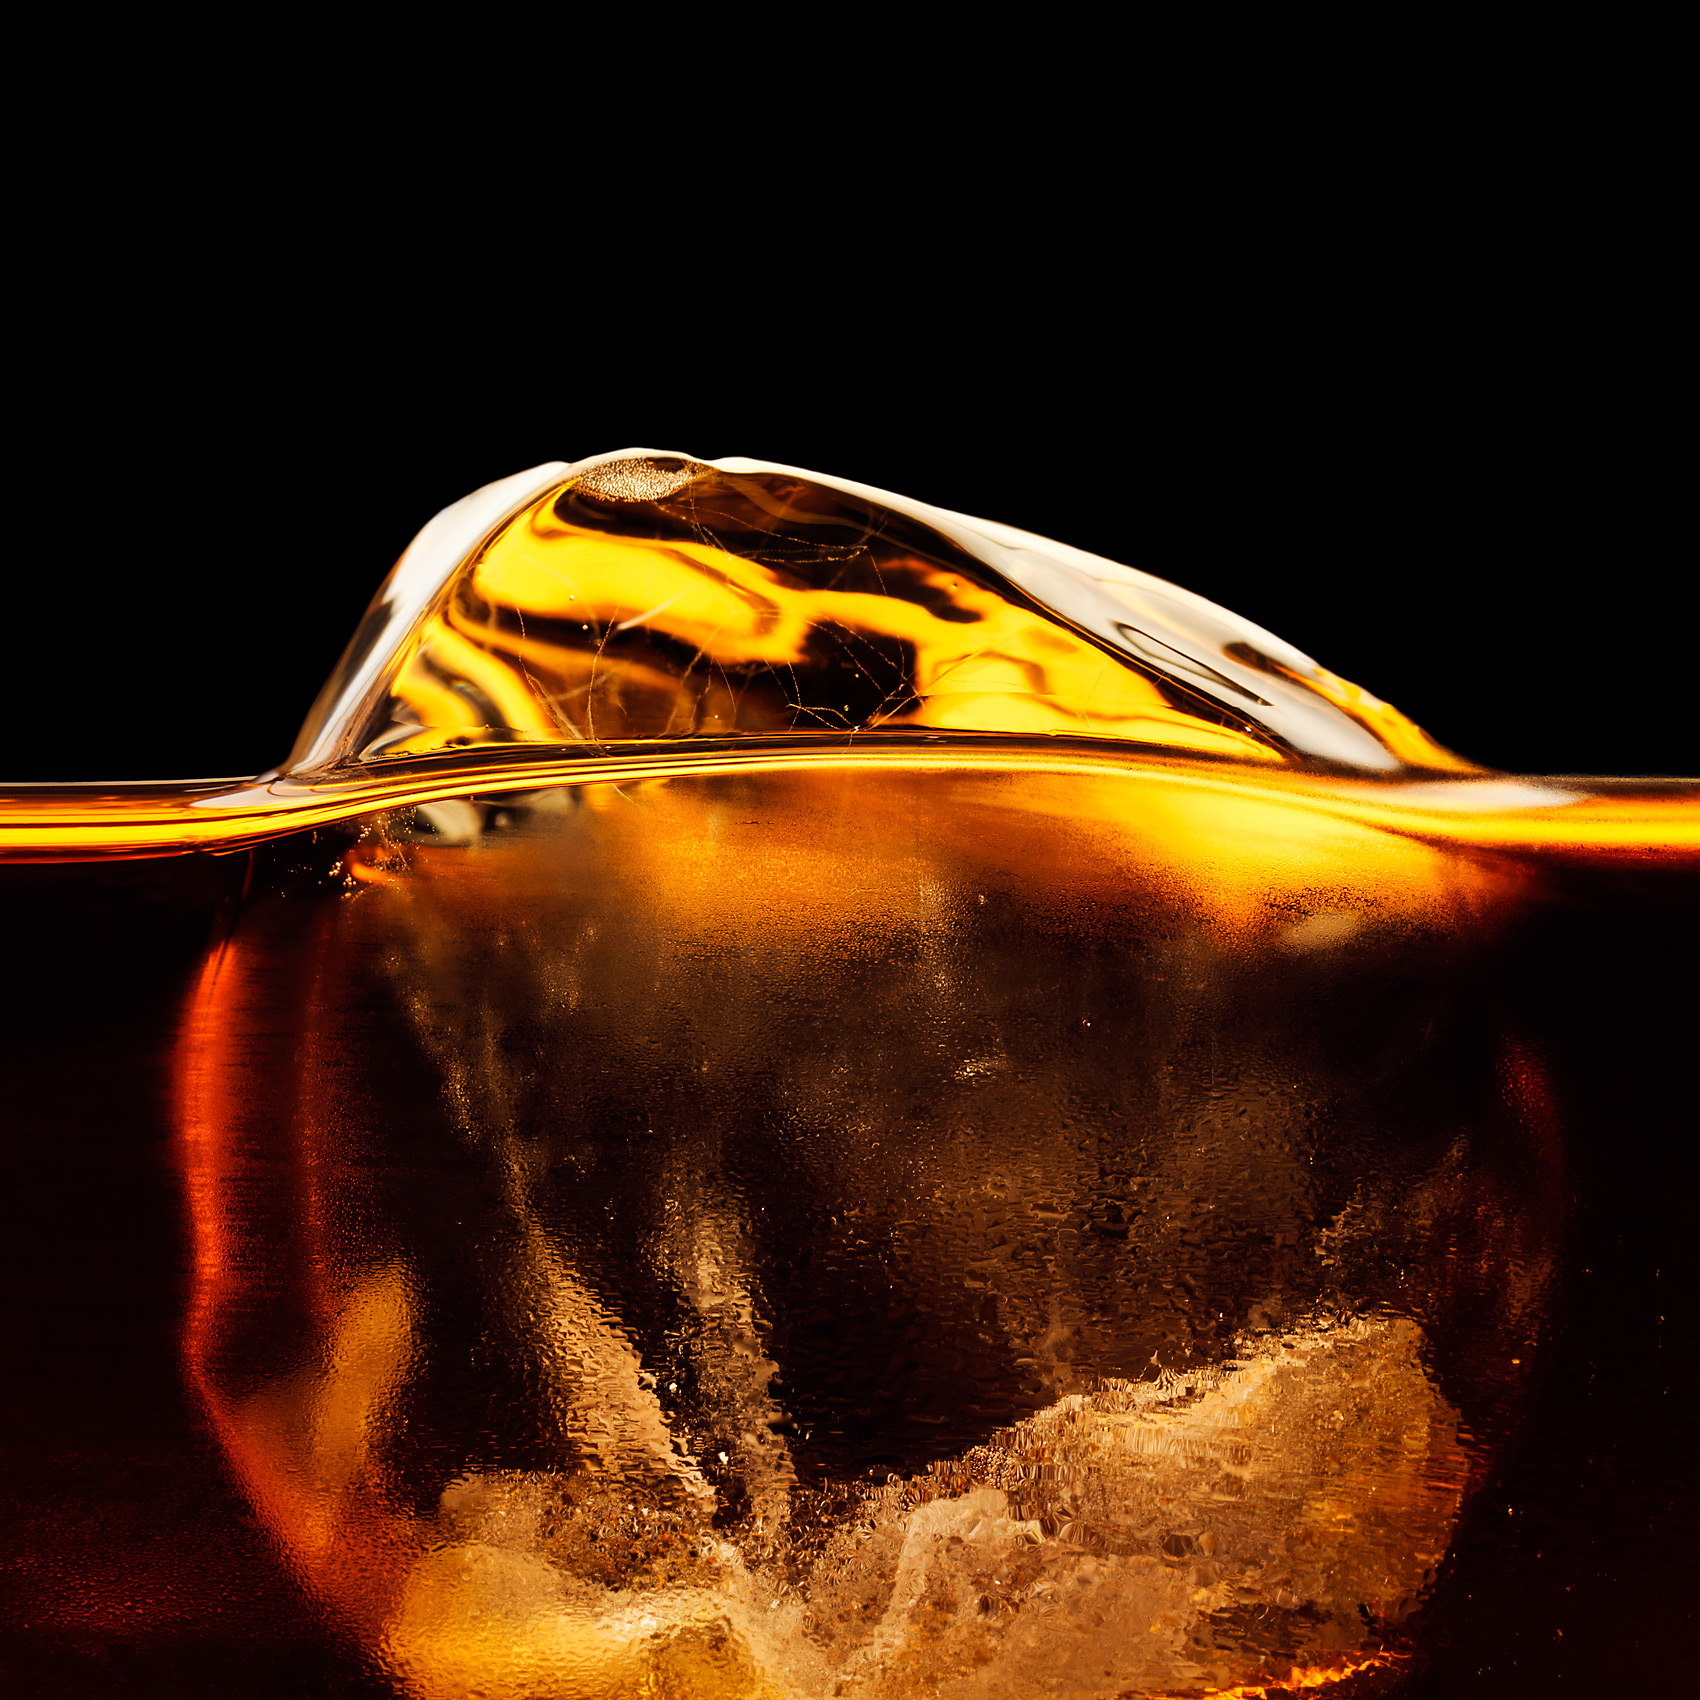 Nick_Rees-Whisky-MACRO_2